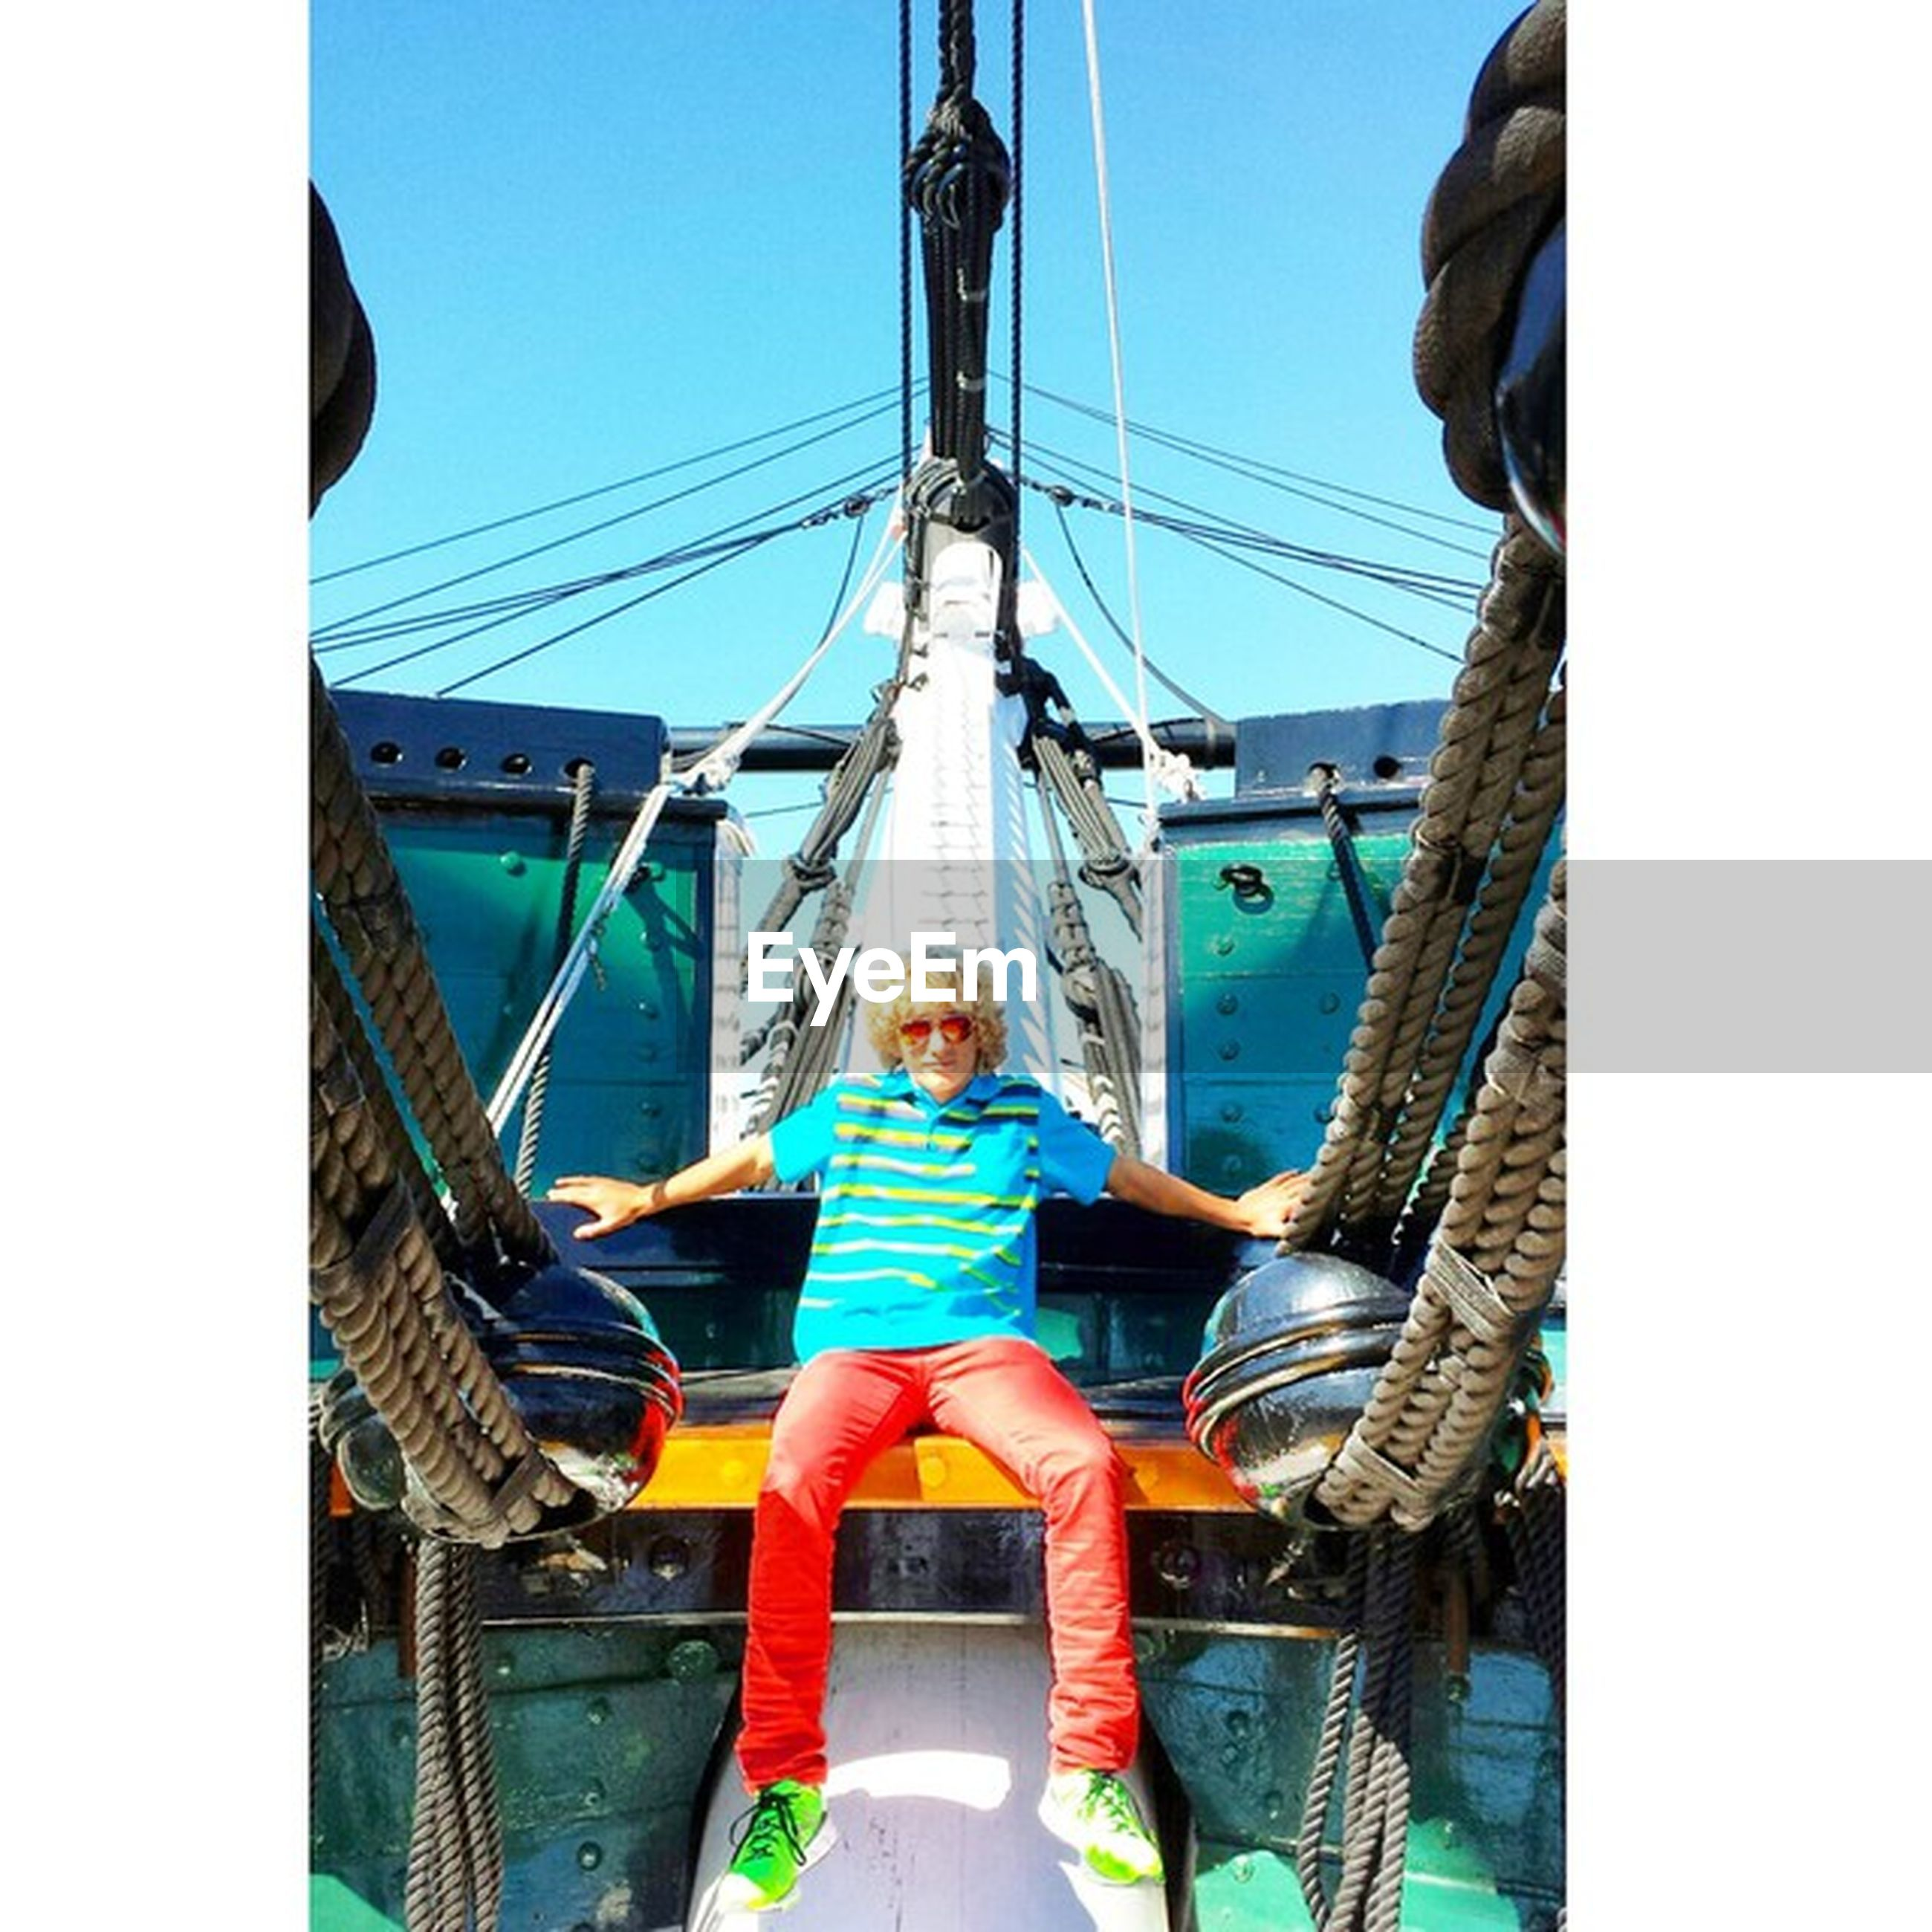 lifestyles, nautical vessel, transportation, leisure activity, casual clothing, built structure, men, travel, rear view, architecture, boat, full length, standing, sky, mode of transport, bridge - man made structure, tourism, connection